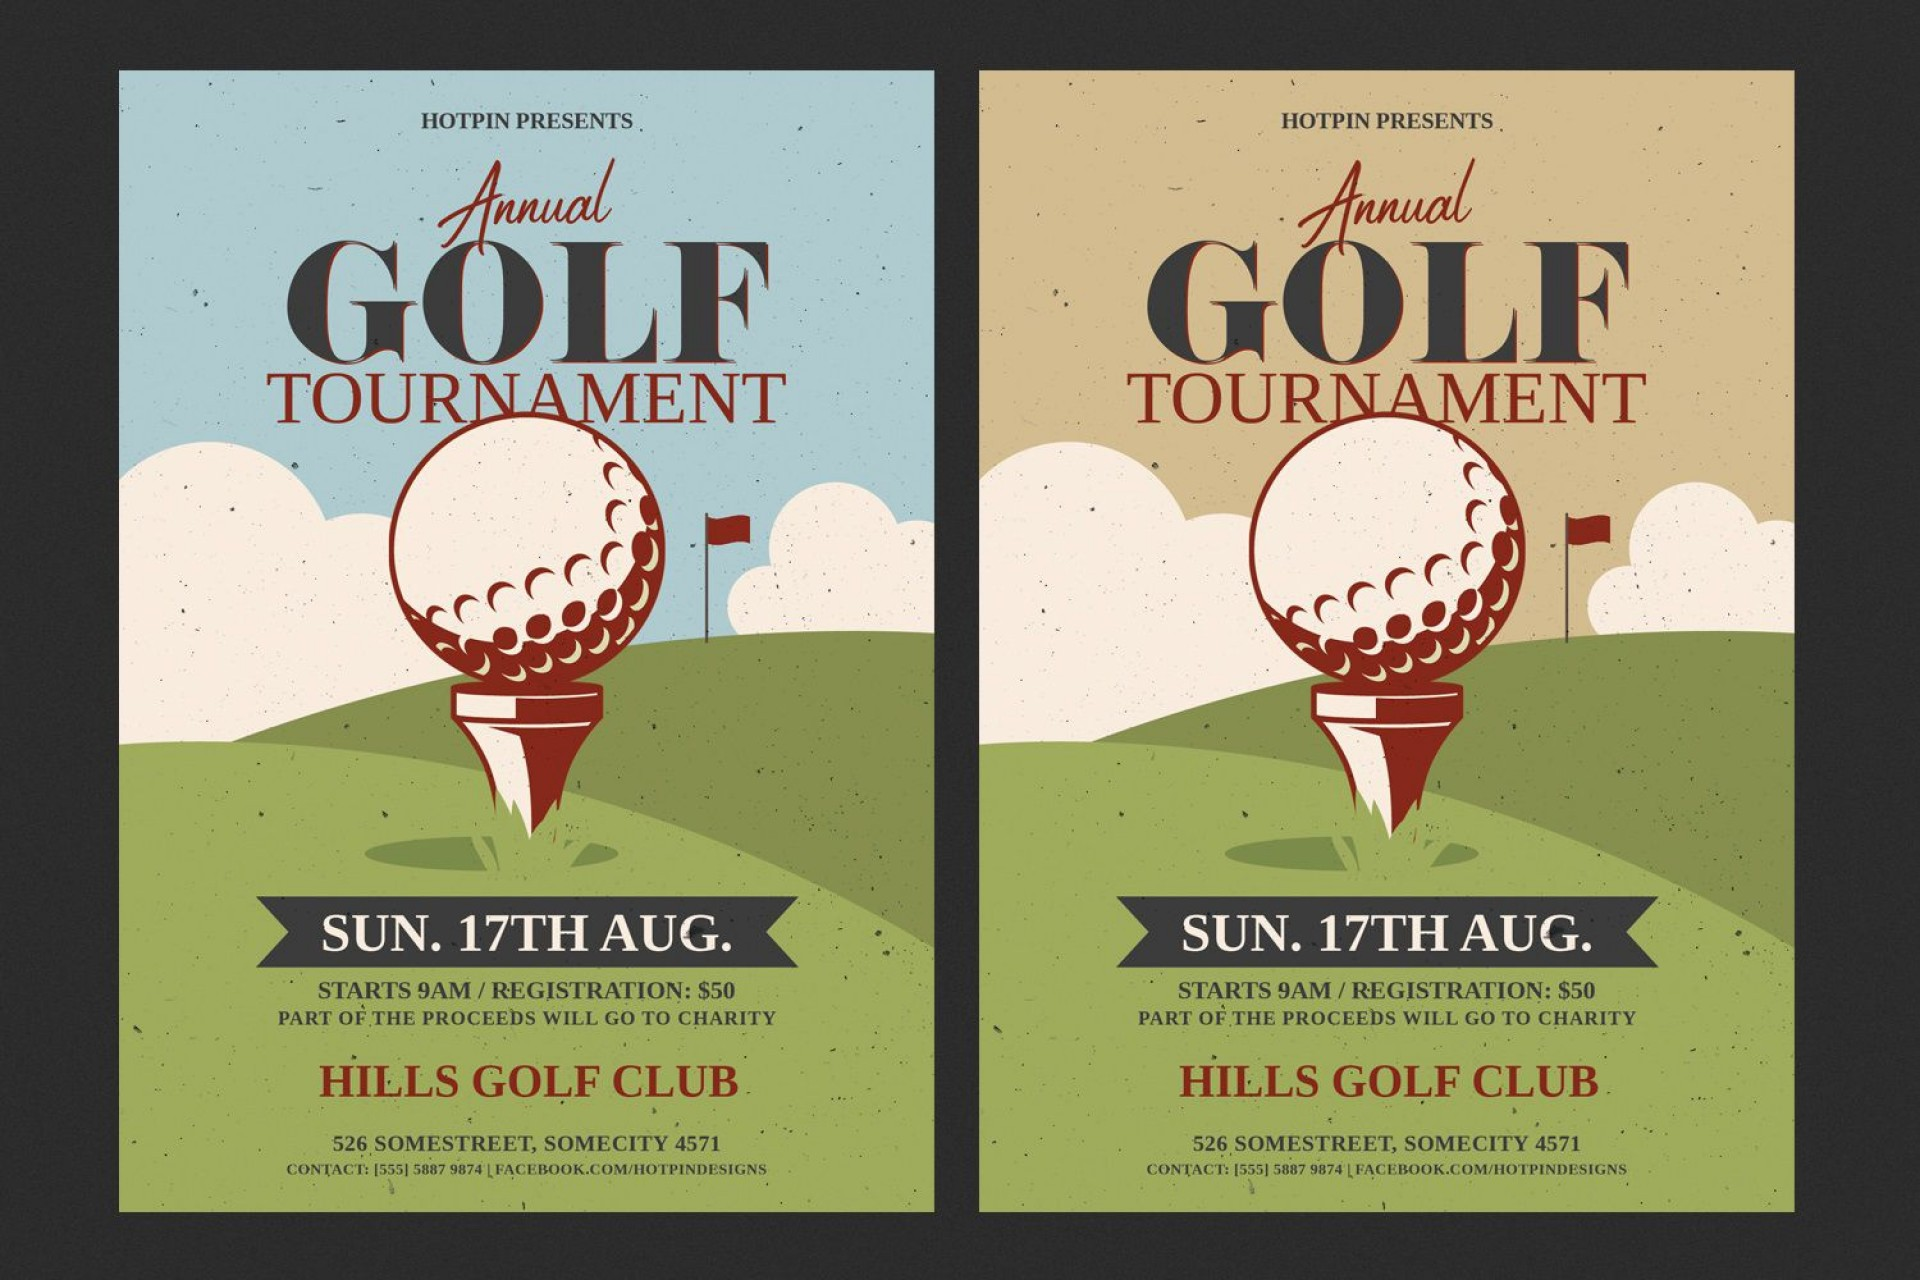 000 Remarkable Golf Tournament Flyer Template Example  Word Free Pdf1920